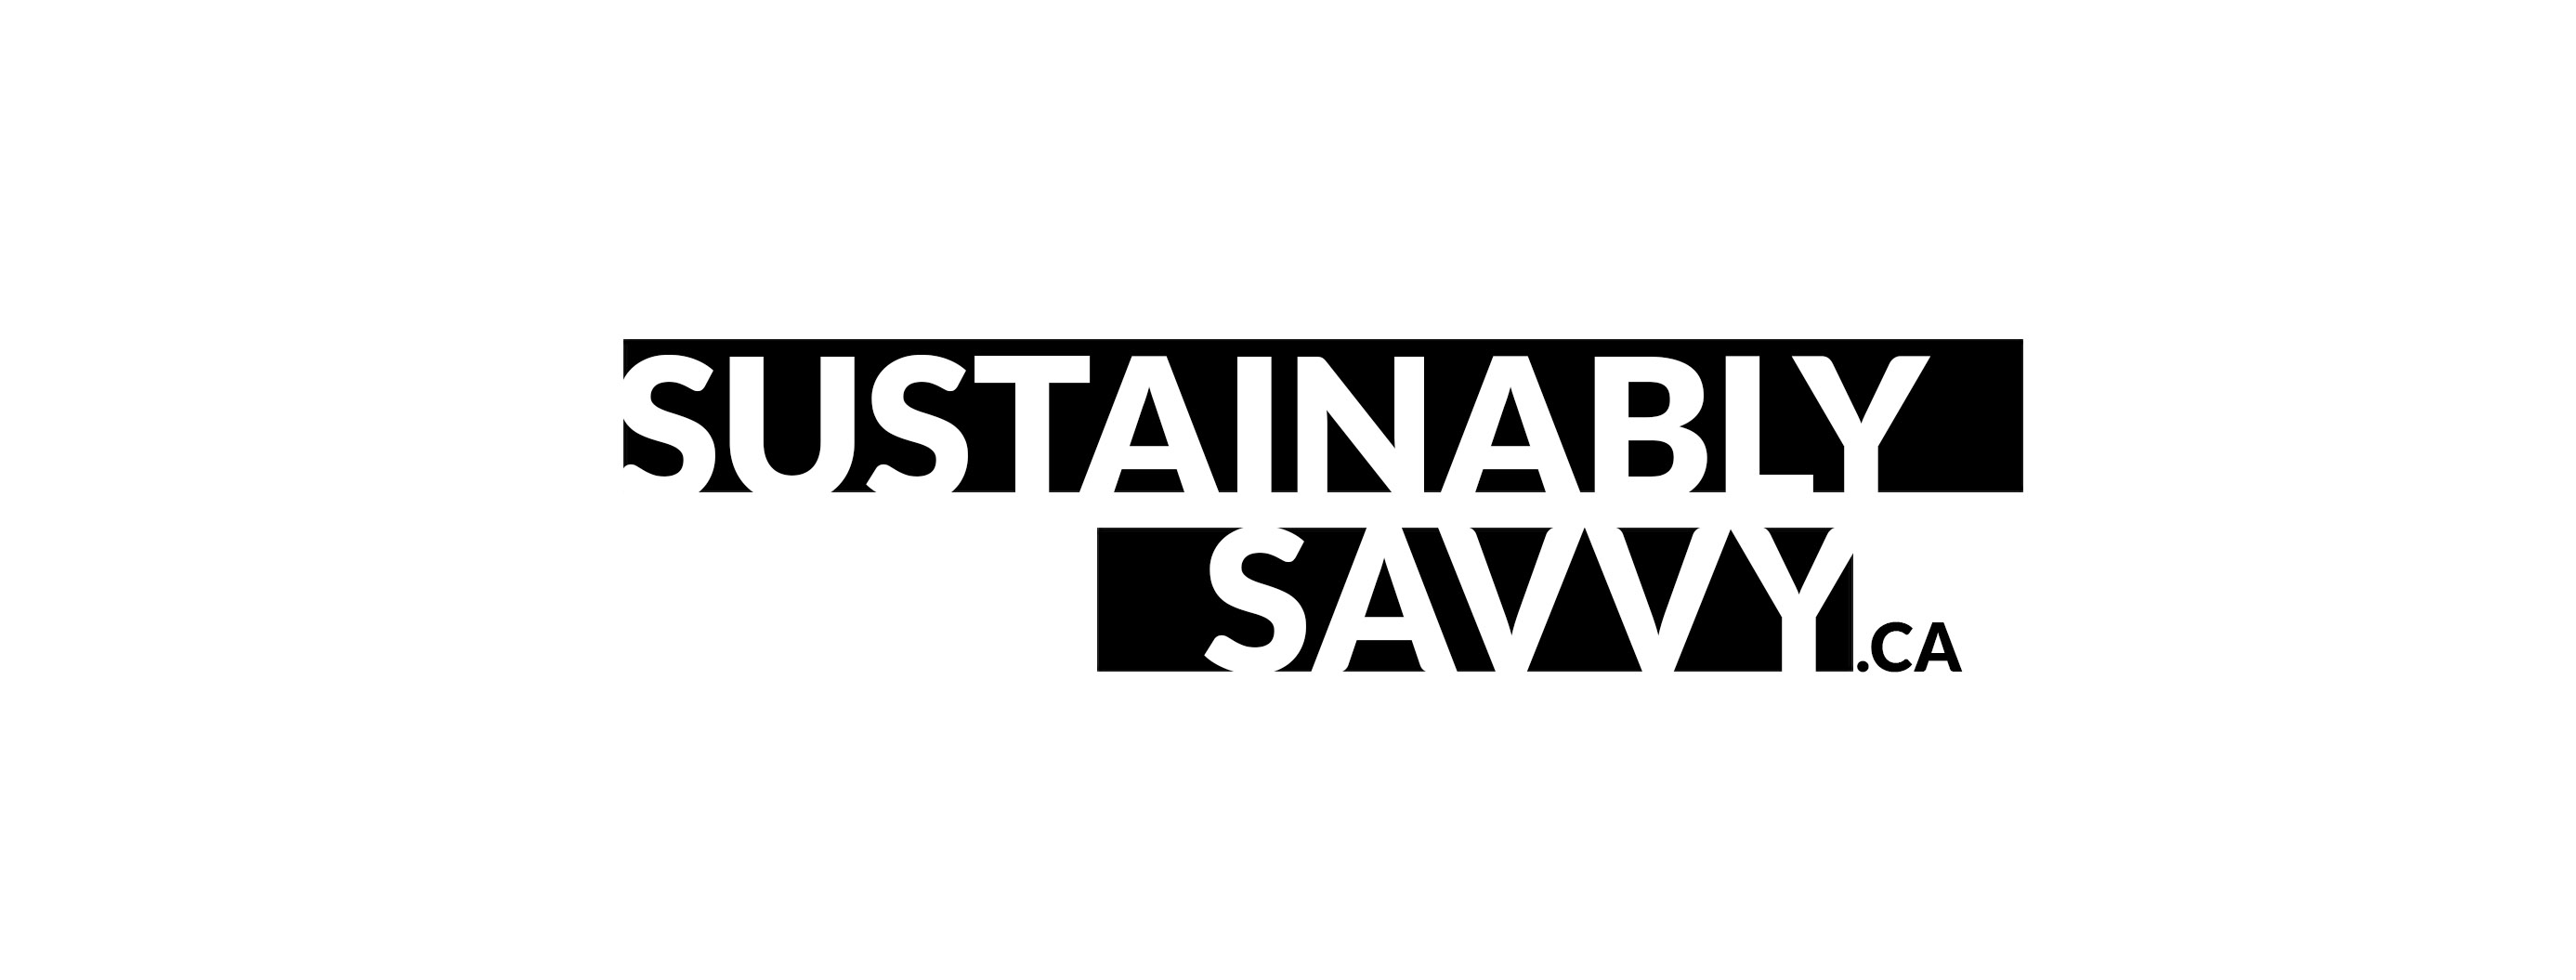 SUSTAINABLY SAVVY HEADER